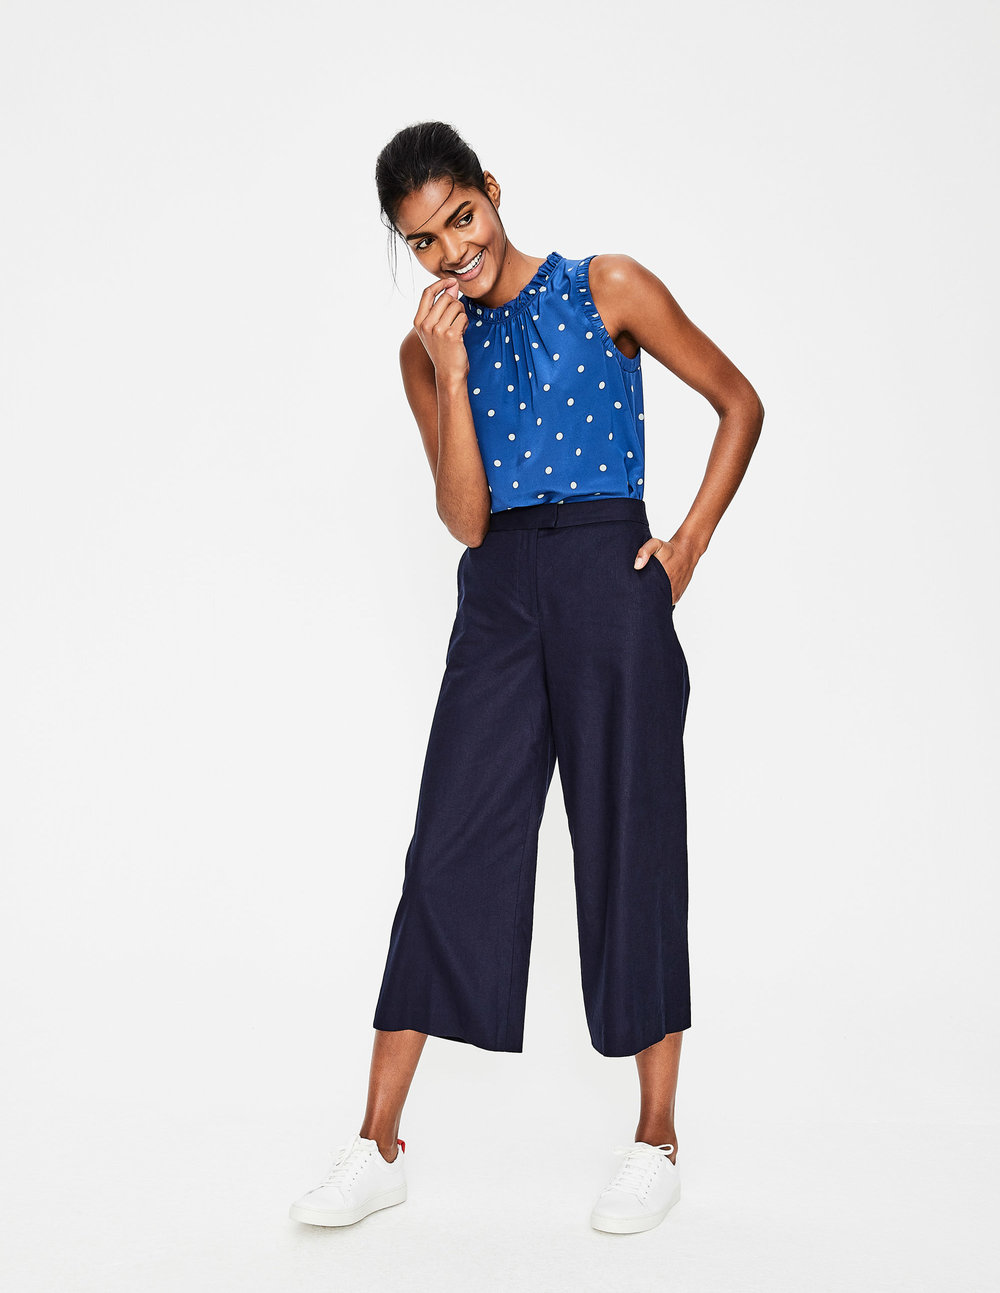 WIDELEG CULOTTES. Available in two colors. Boden. $95.